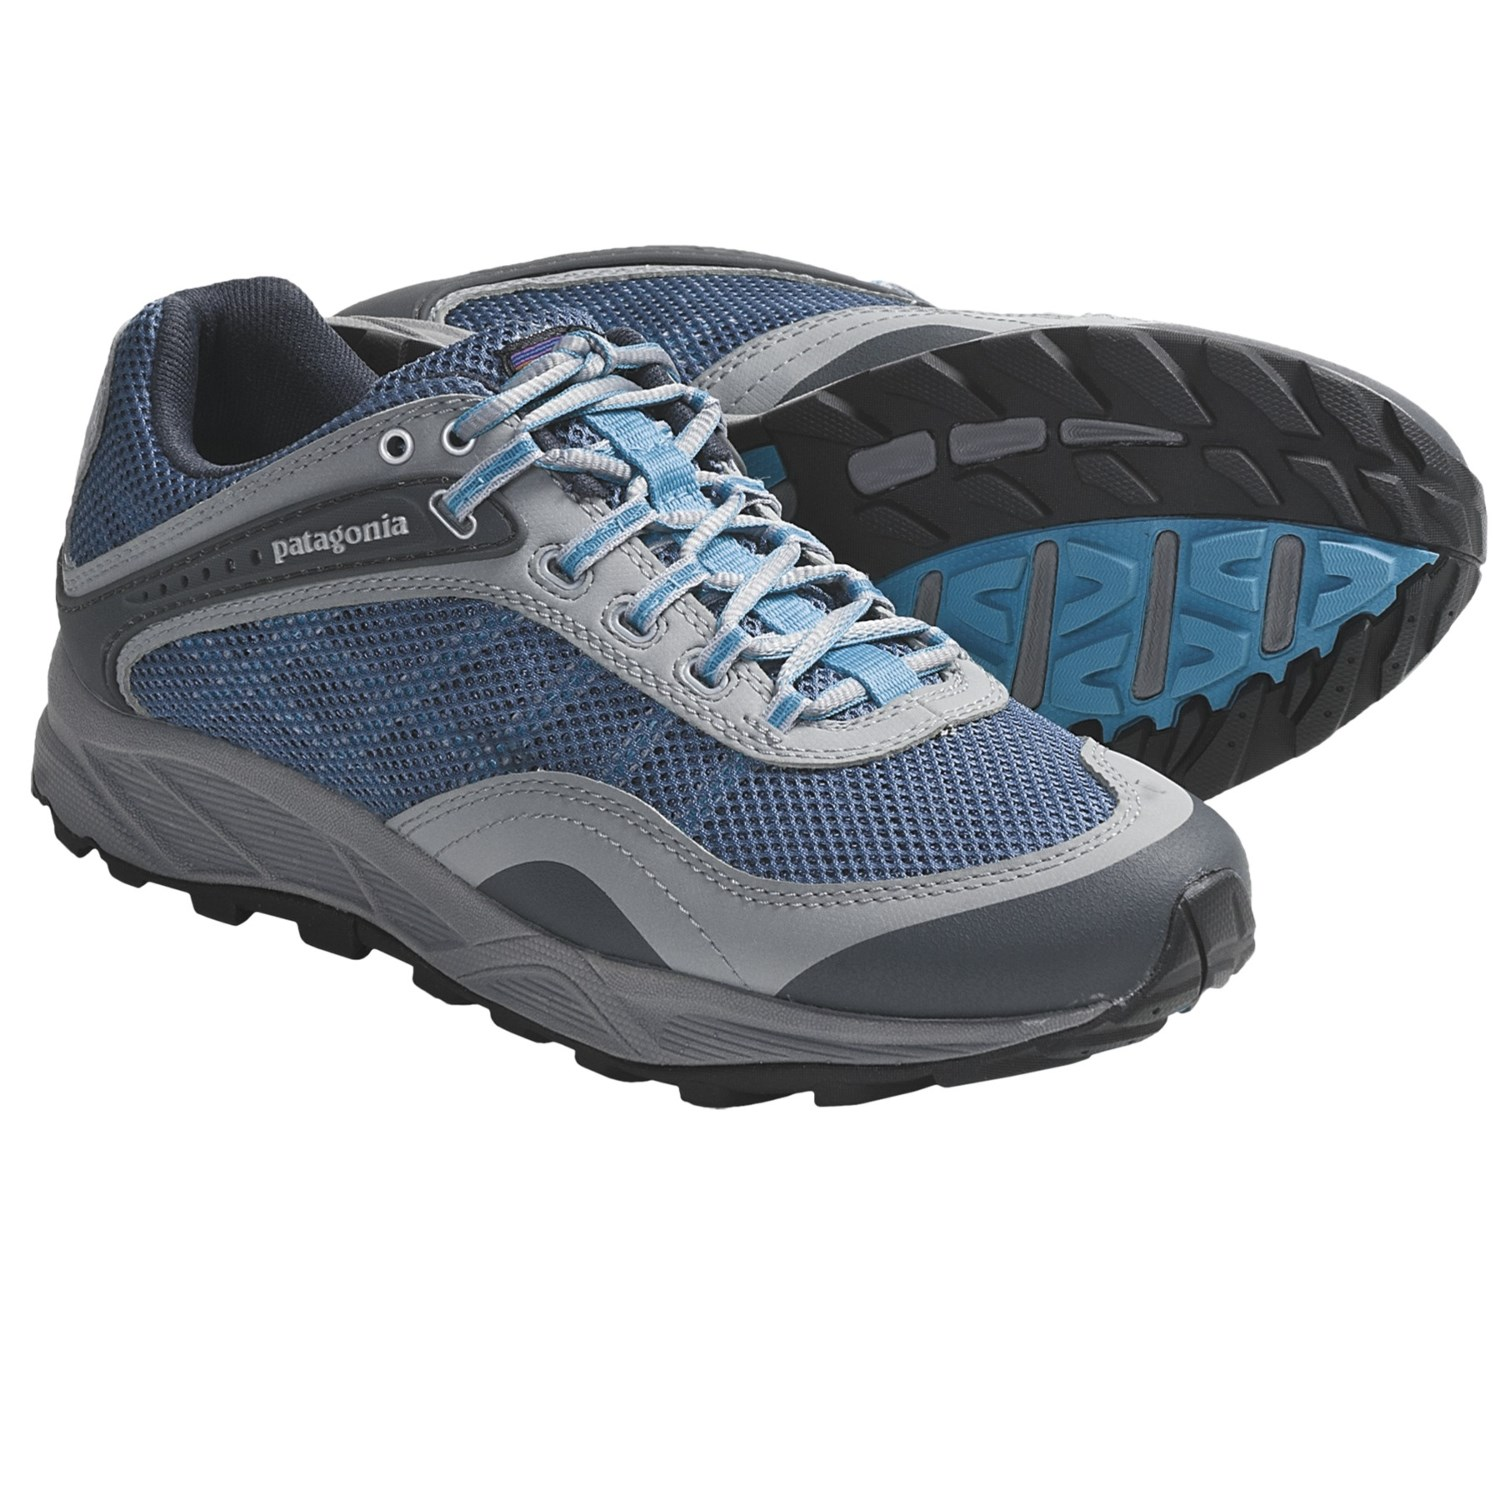 Ultralight Trail Running Shoes